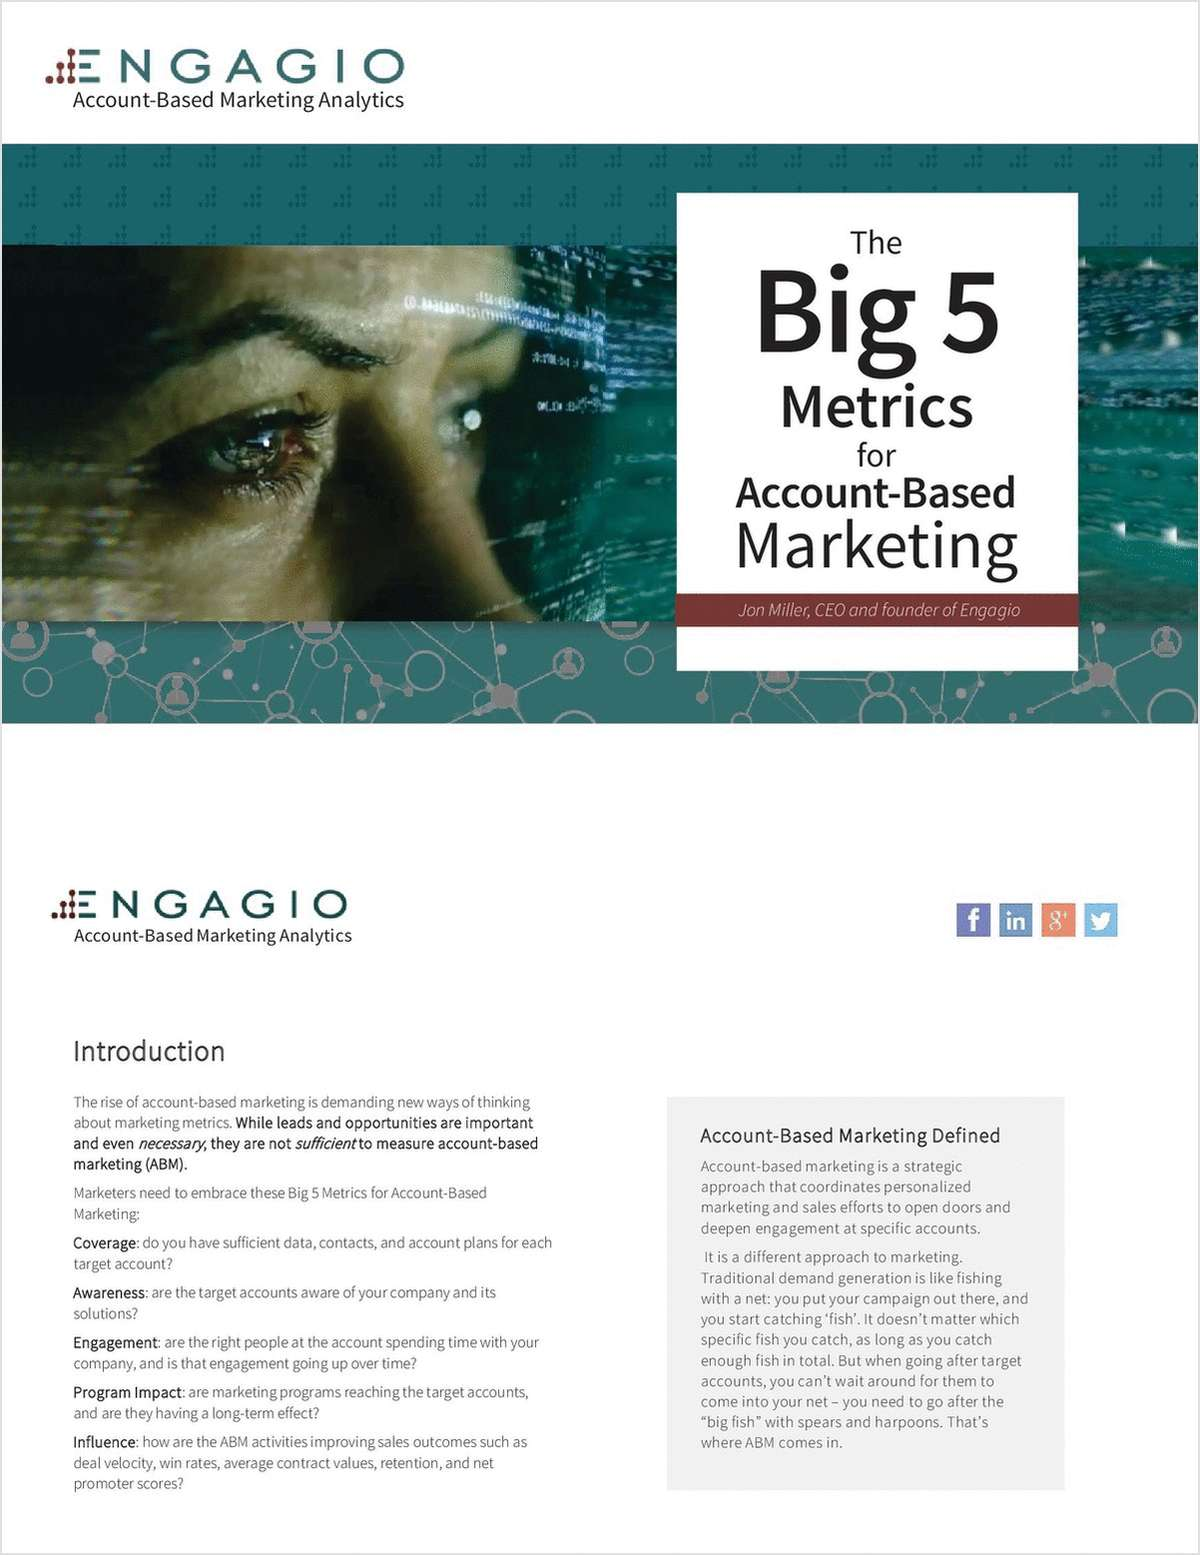 The Big 5 Metrics for Account-Based Marketing